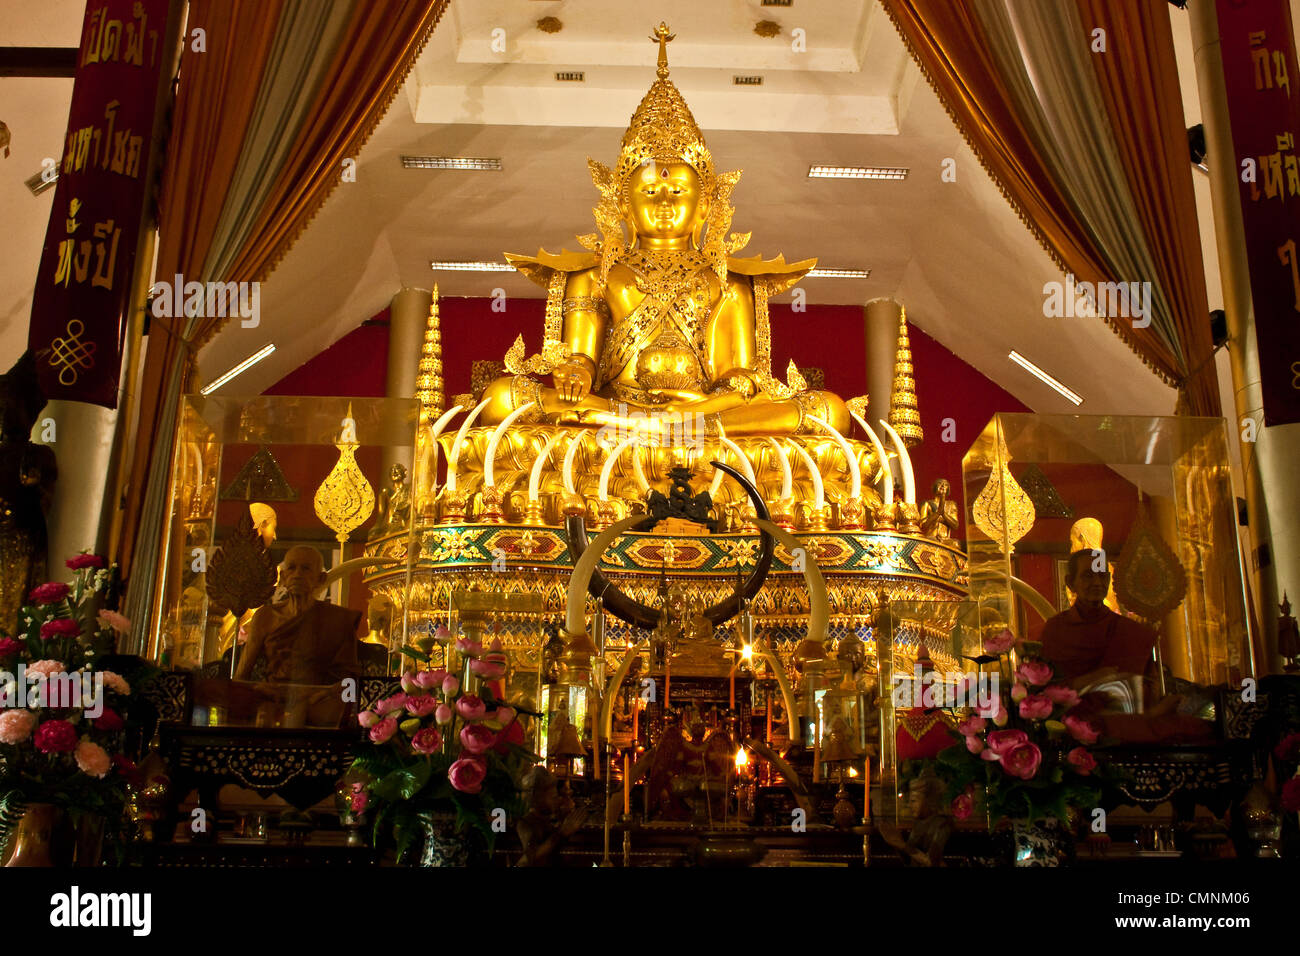 Statue of Buddha in Thailand - Stock Image